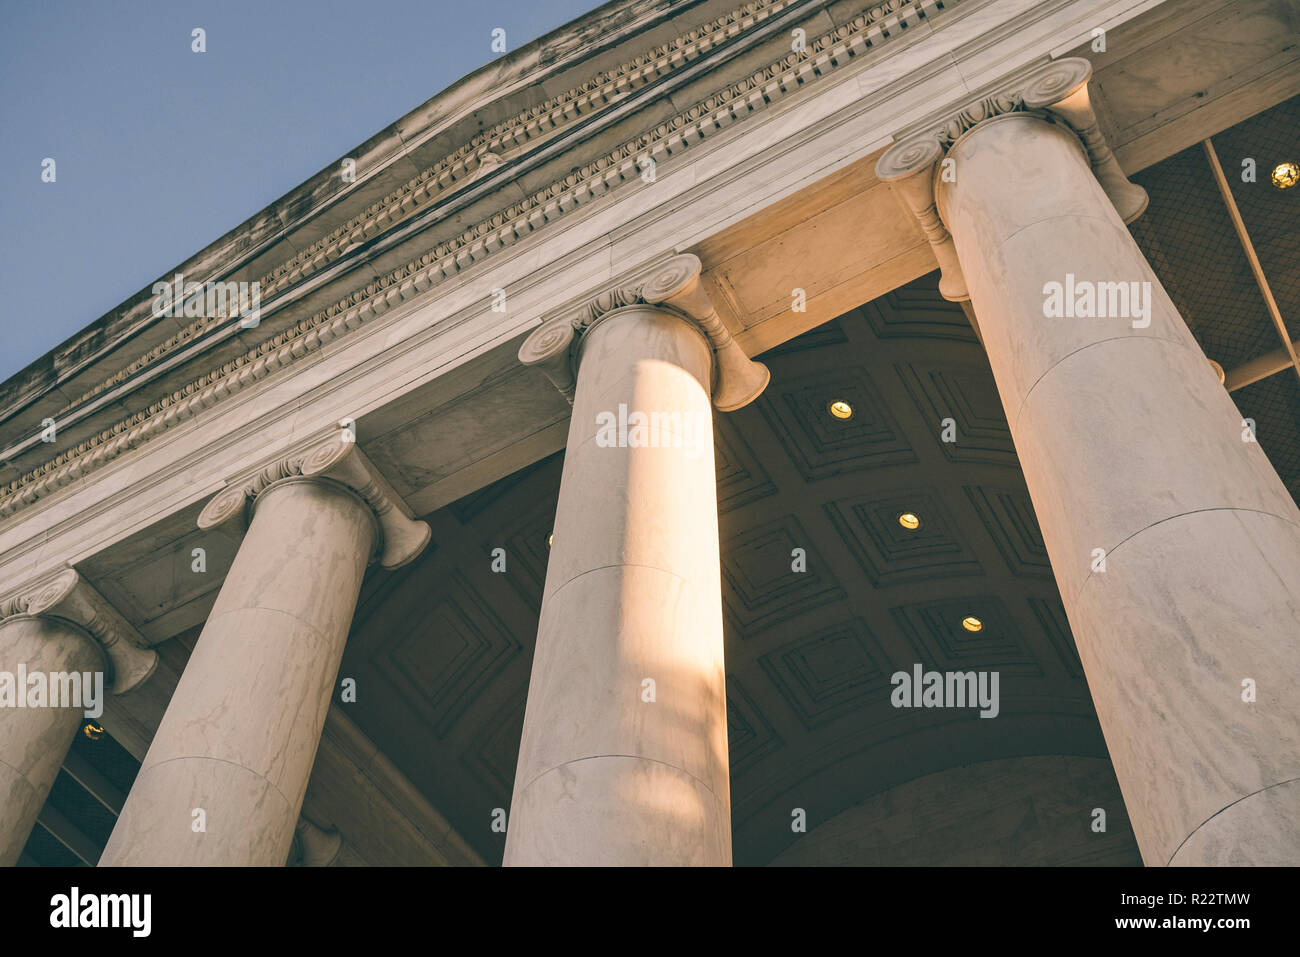 View of columns, entablature and pediment with sky at the Jefferson Monument - Stock Image